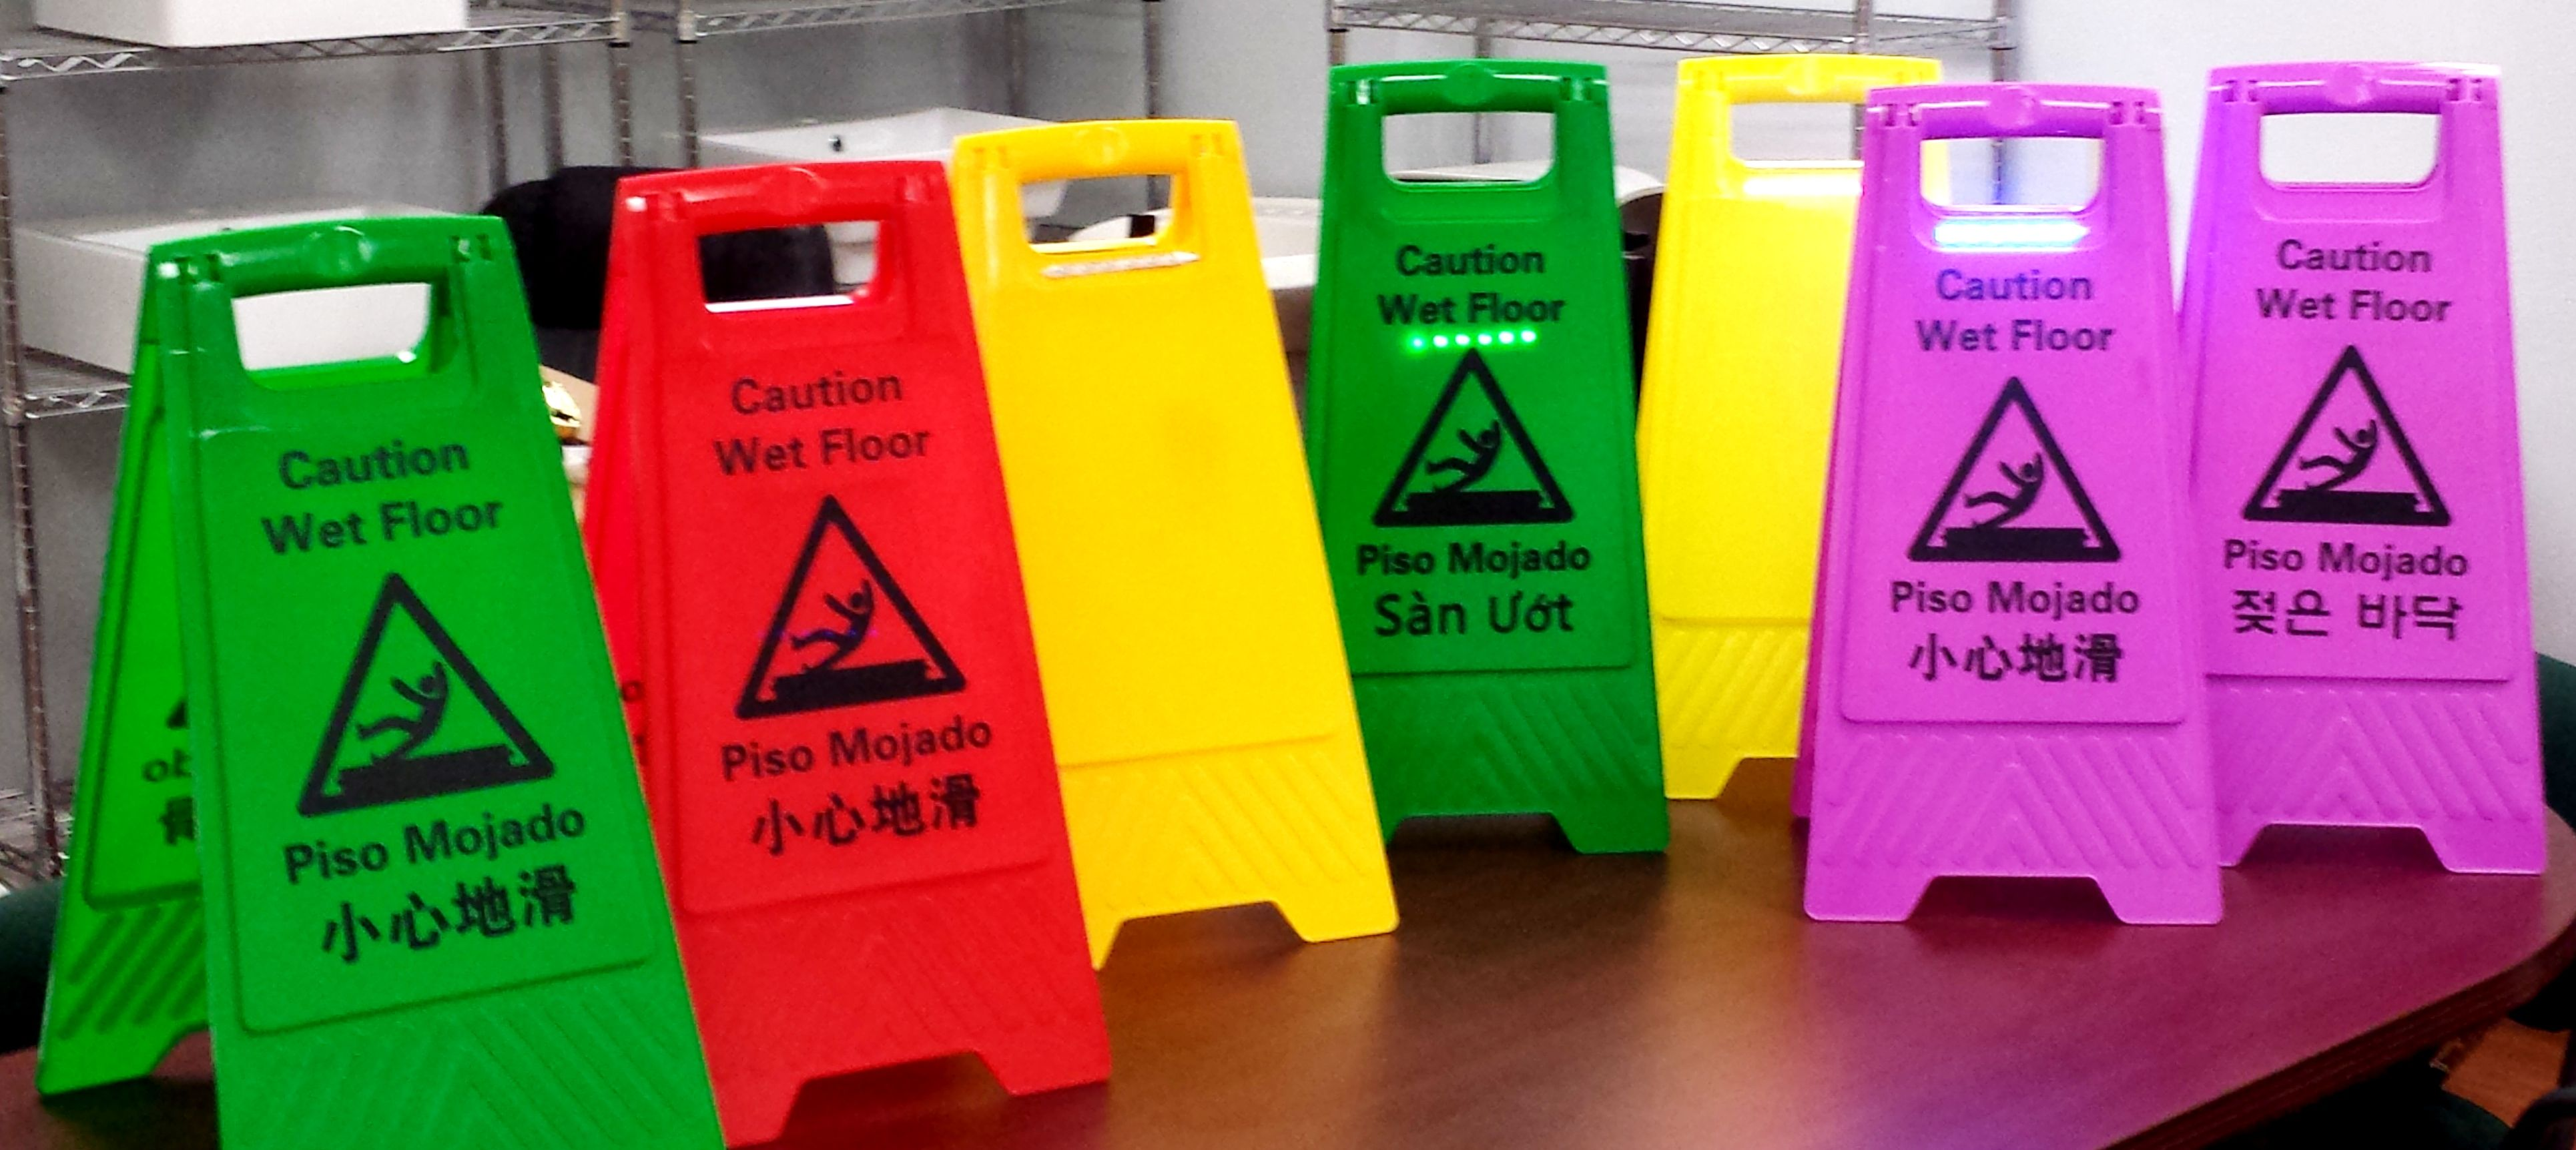 Multiple Colored Wet Floor Signs Come In Different Languages Wet Floor Signs Wet Floor Flooring